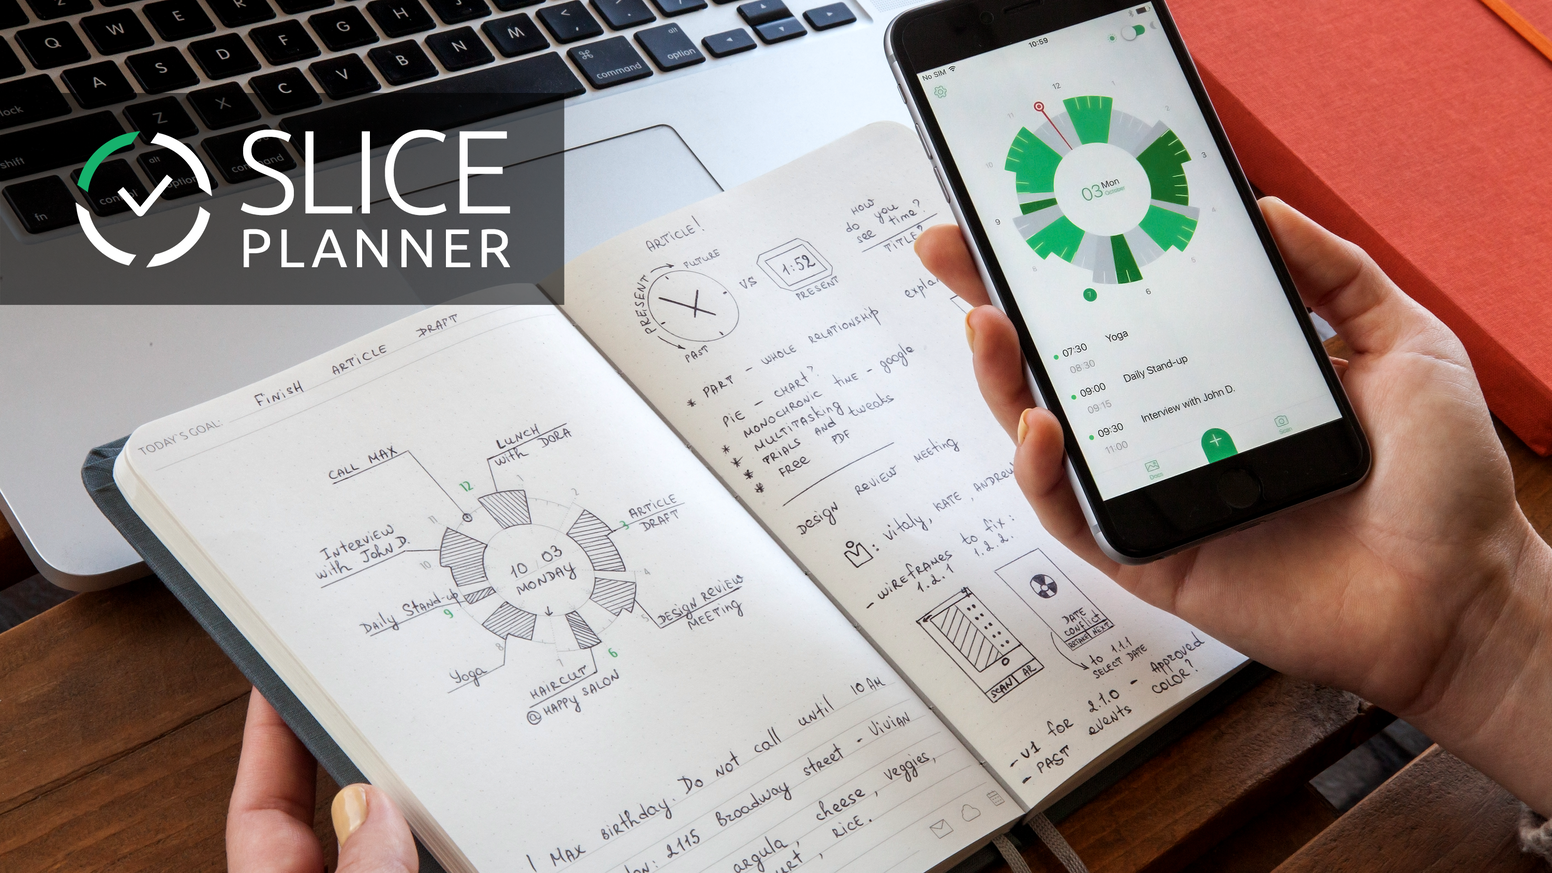 slice planner first notebook connected to digital calendars by